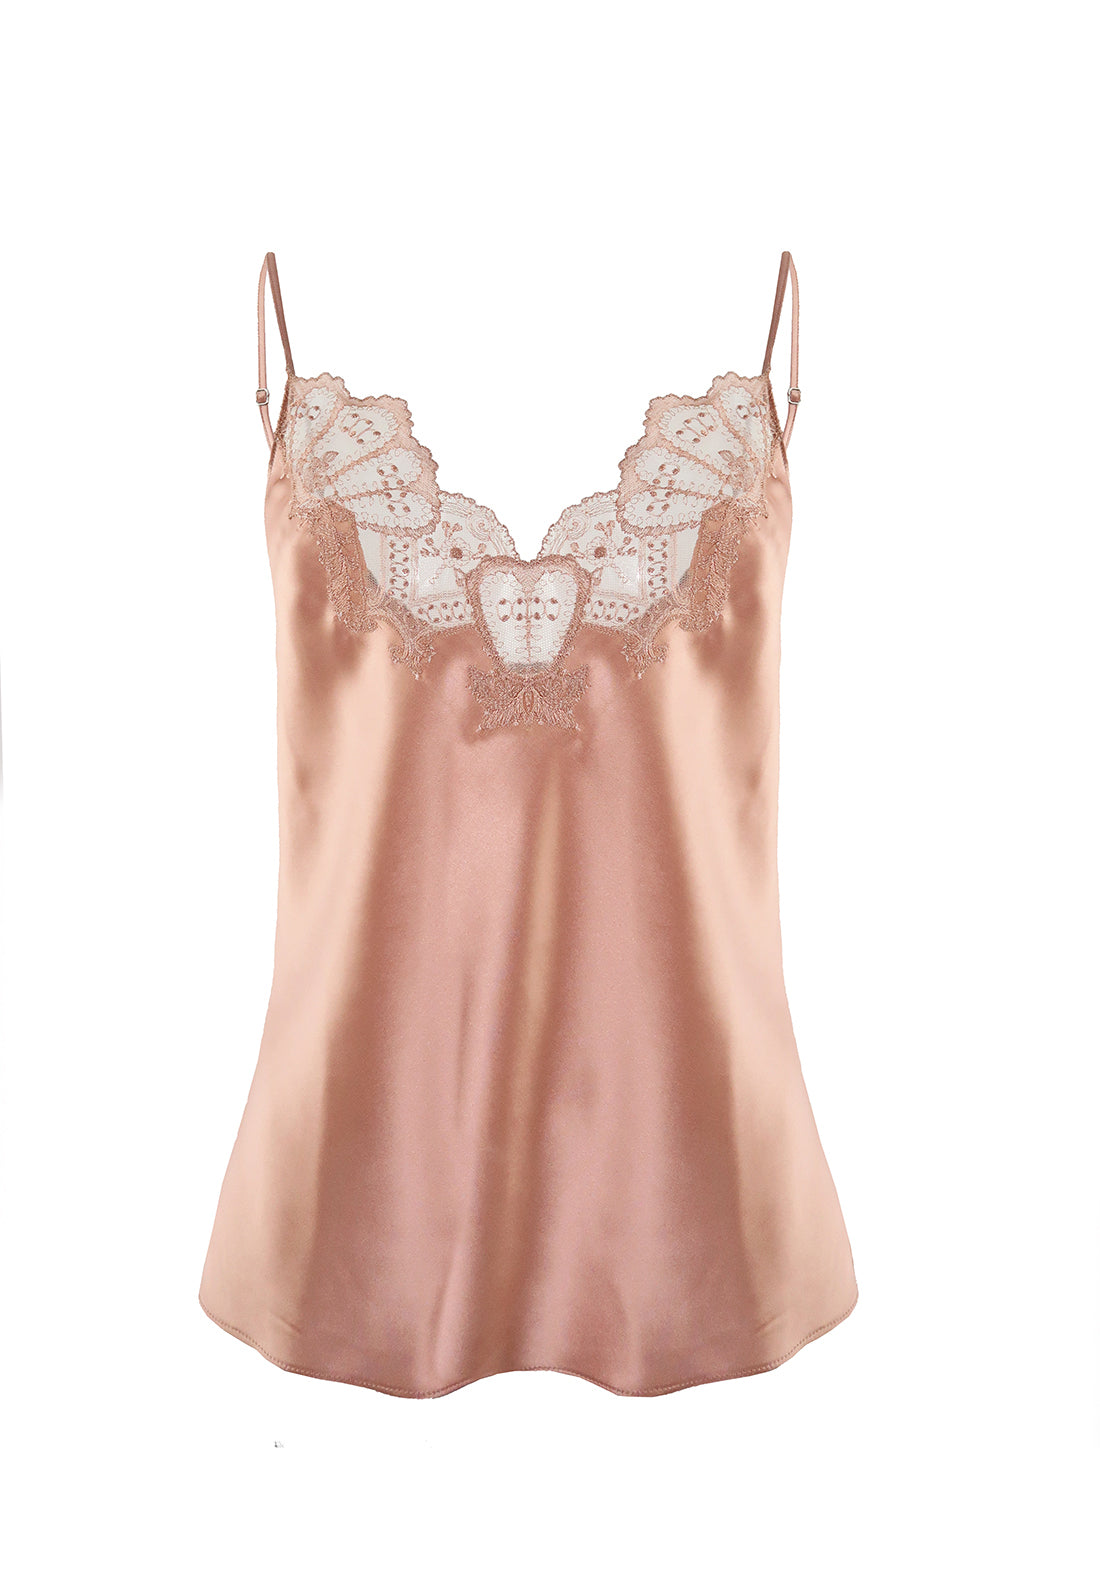 Desert Rose Camisole in Rose Gold